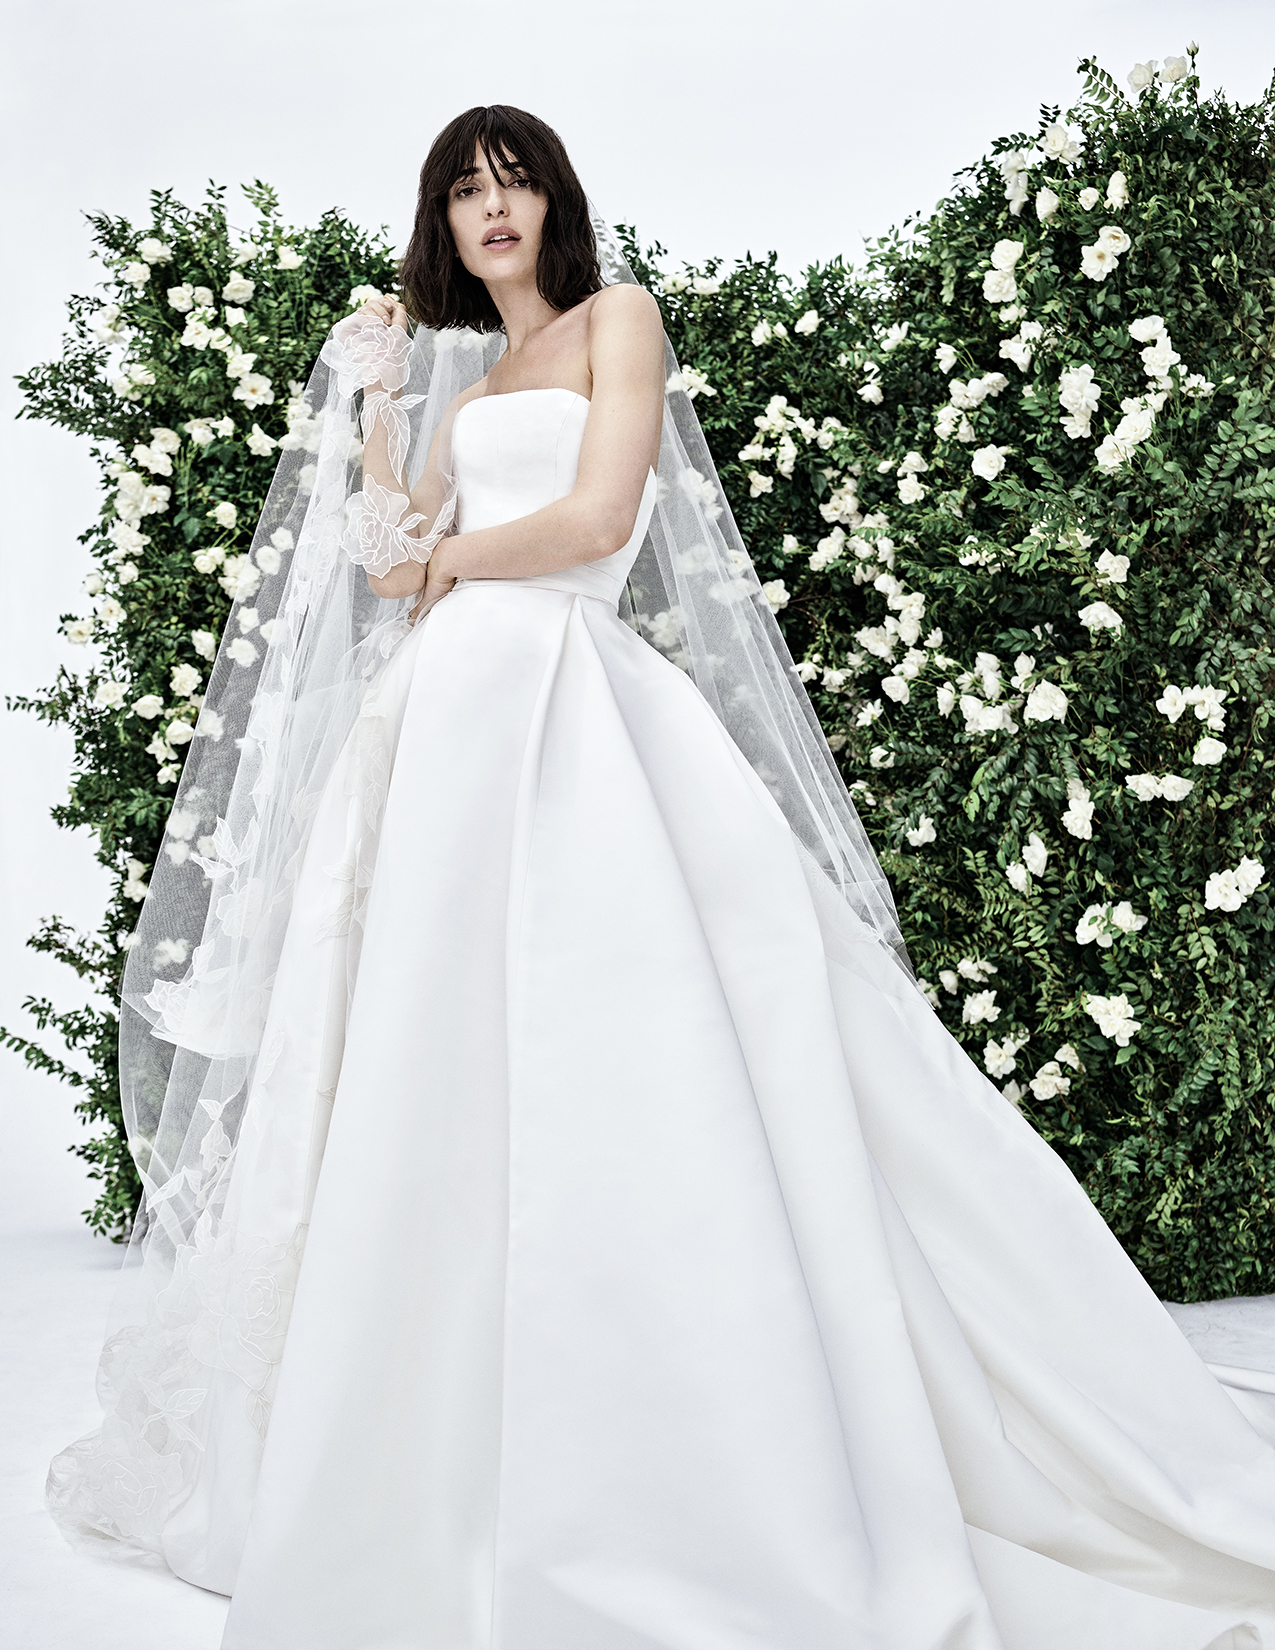 CHNY_SP20_BRIDAL_LONDON_NONEMBROIDERED_S2021N700SFA_F-2.jpg